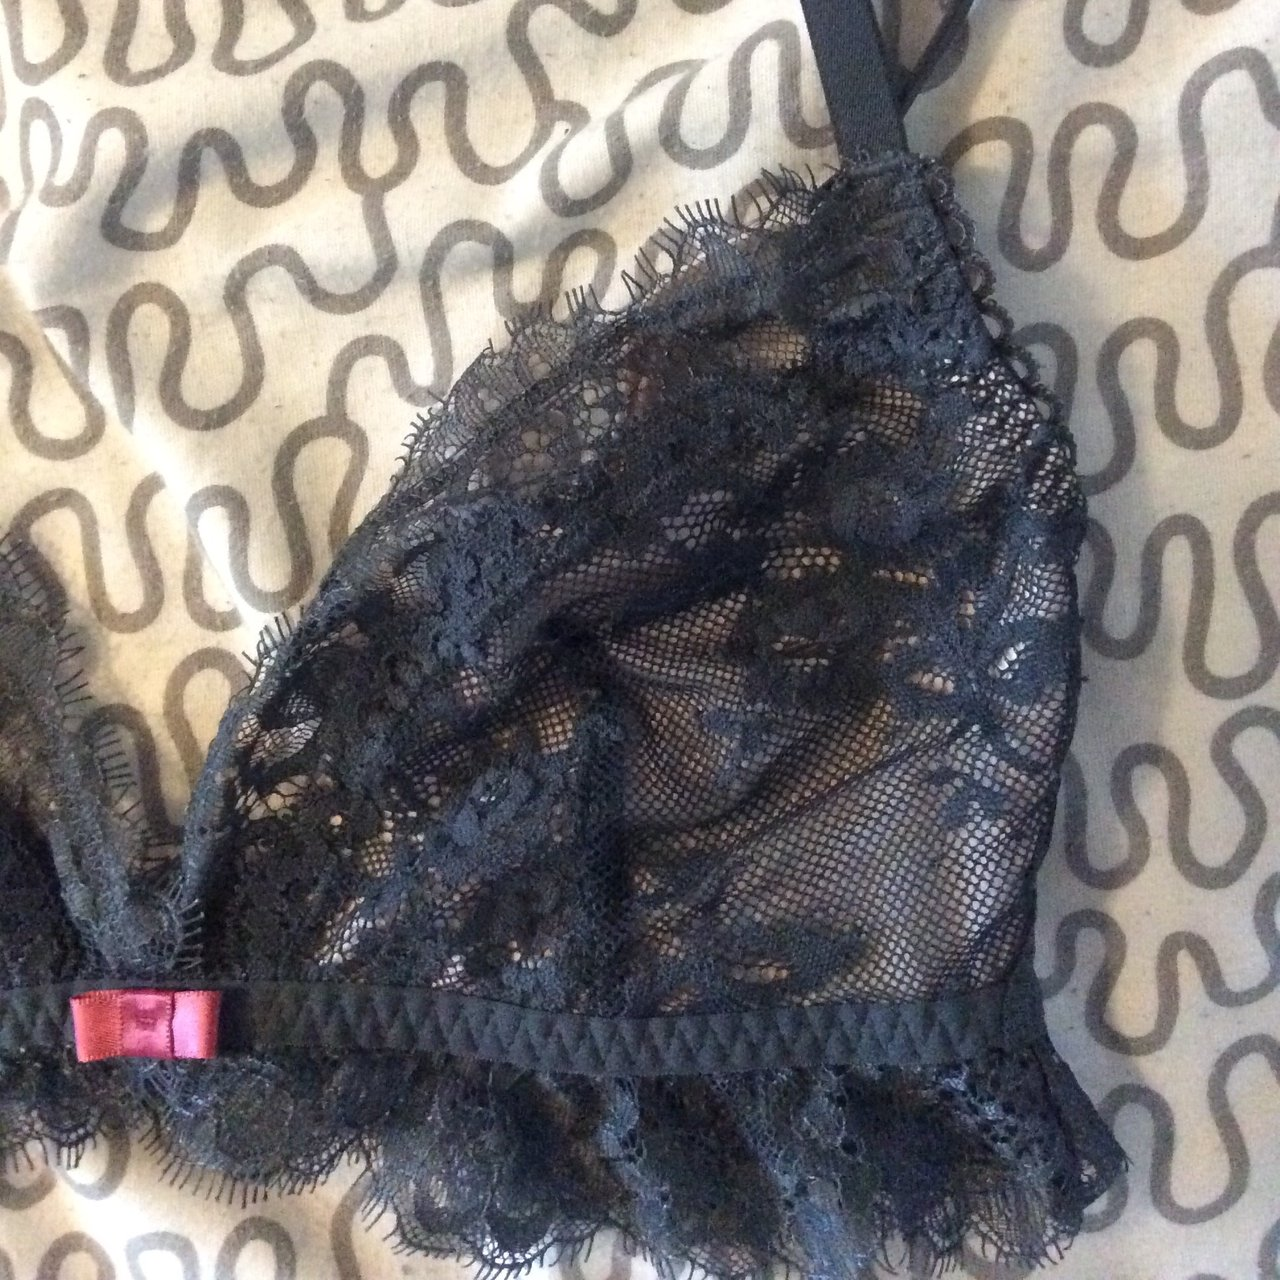 15145ccb417344 v pretty lace bralette🍾 Dark green   grey floral lacey lace - Depop